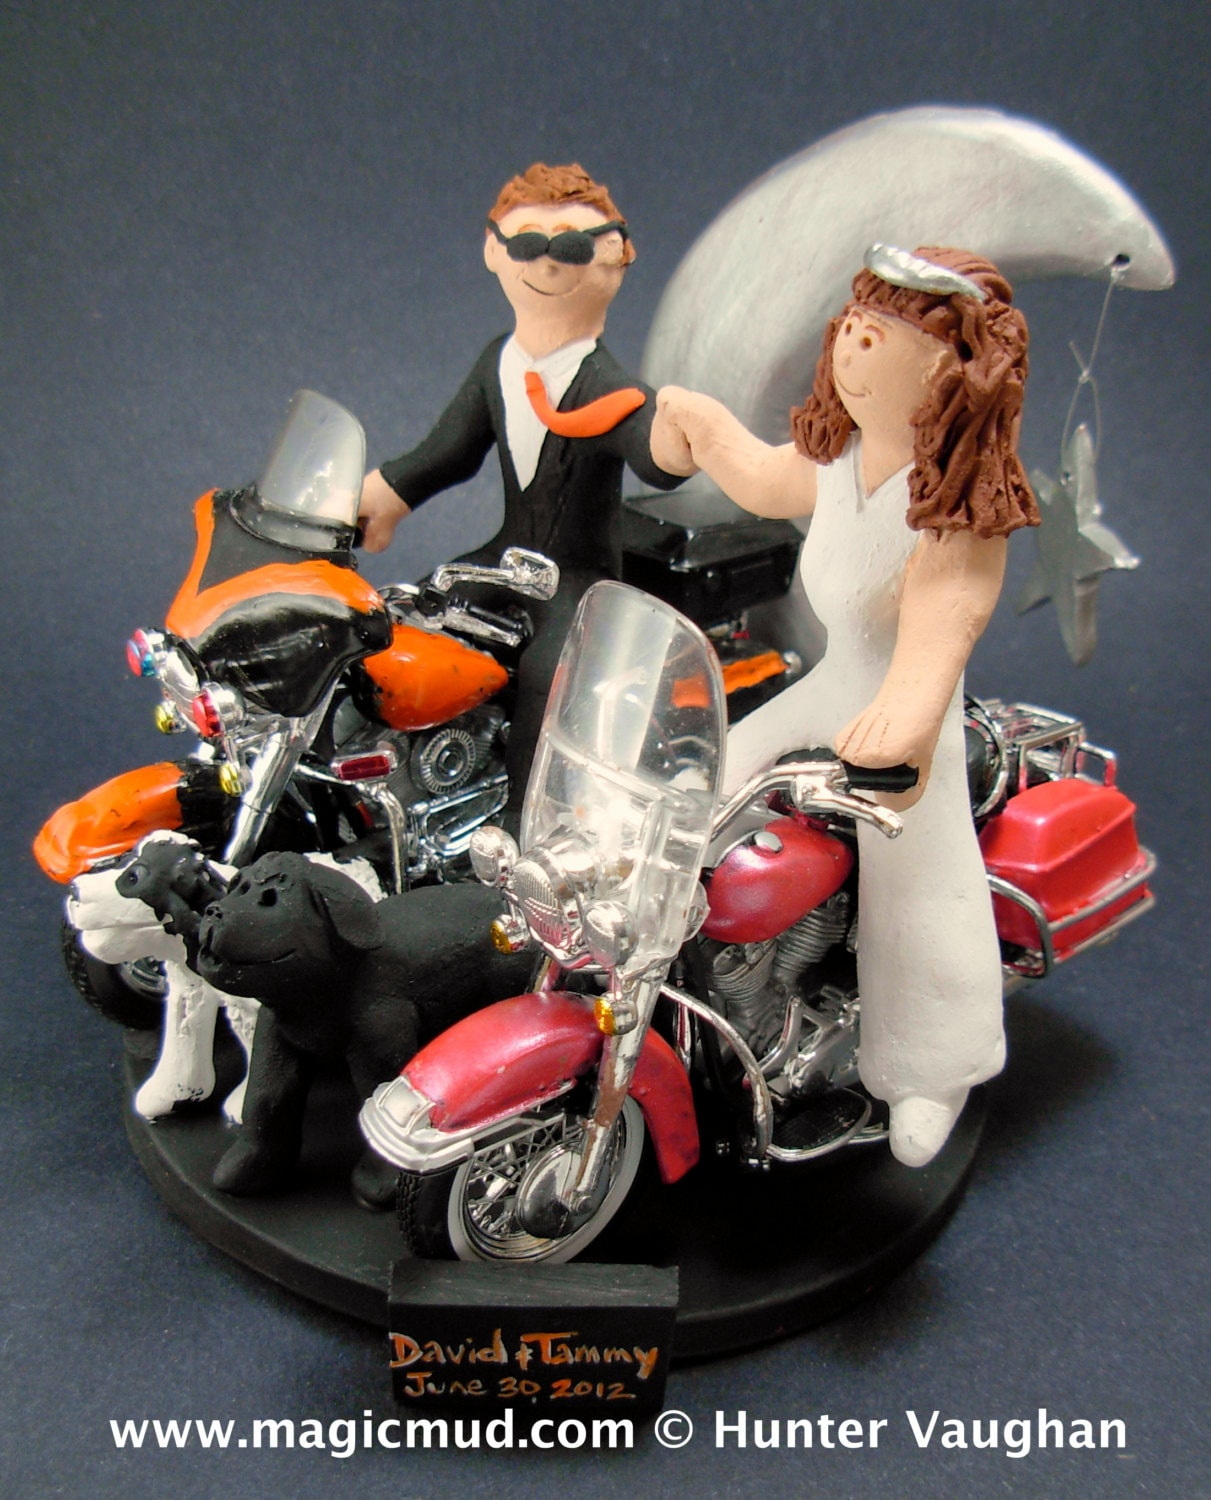 Bride And Groom Riding Harley Davidson Motorcycles Wedding Cake Topper Fist Bump Wedding Cake Topper Motorcycle Bride Wedding Cake Topper